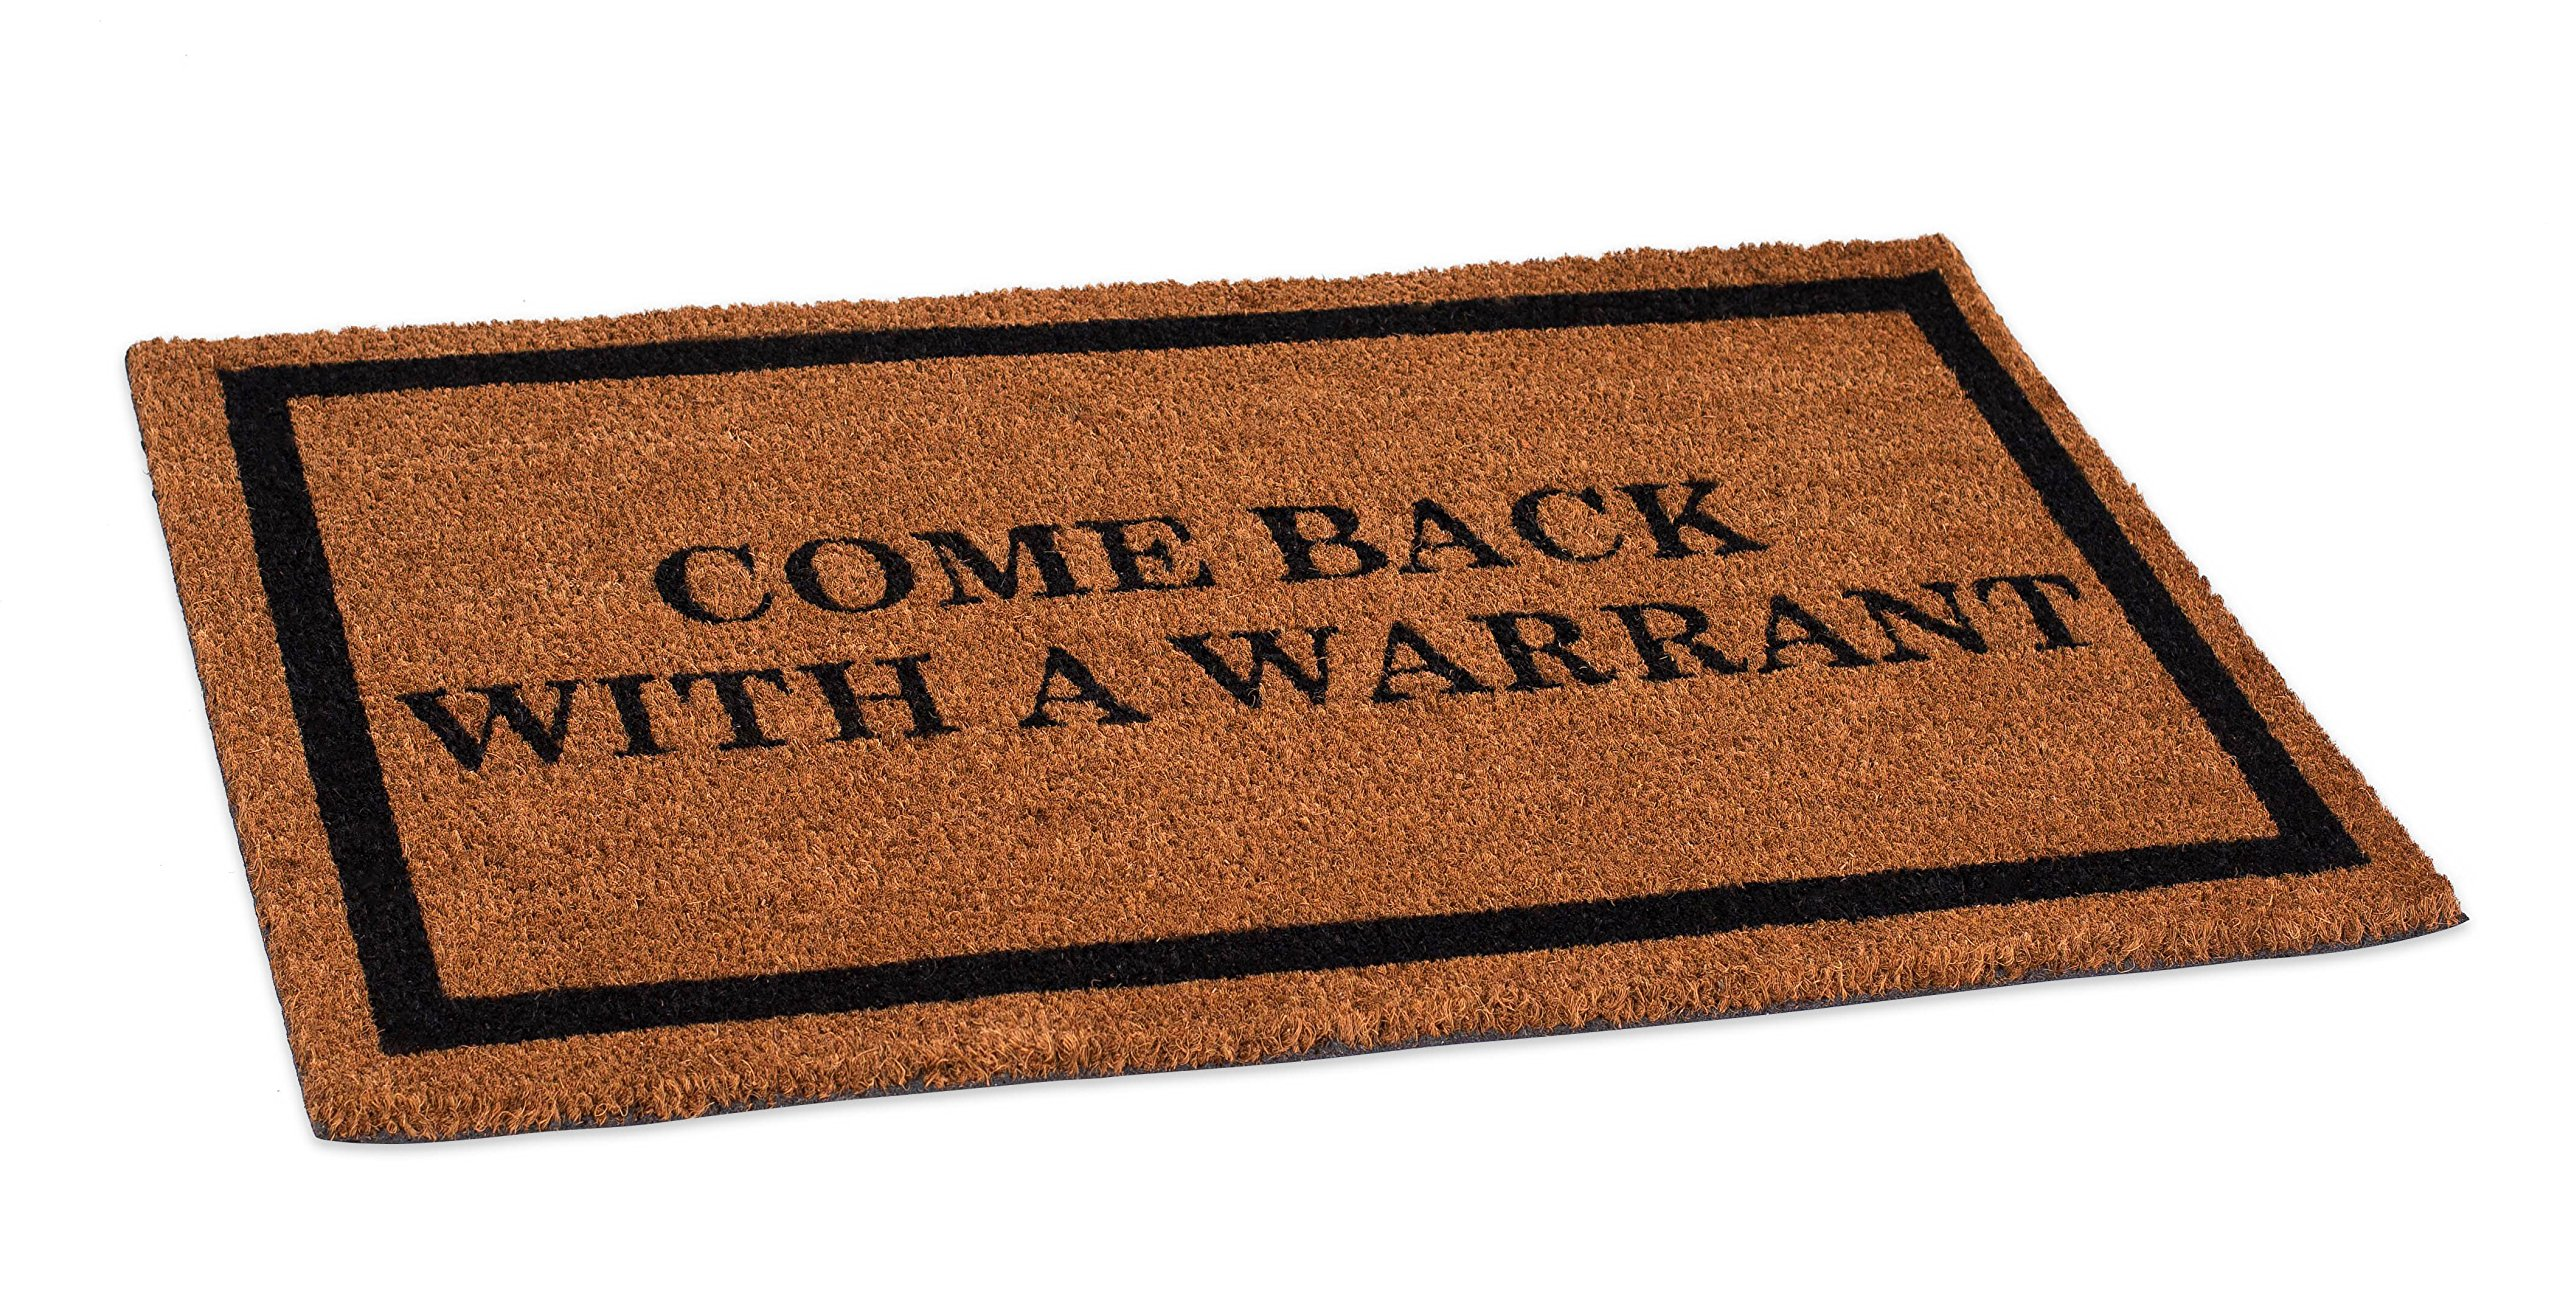 BirdRock Home Come Back With a Warrant Coir Doormat | 18 x 30 Inch | Standard Welcome Mat with Black Border and Natural Fade | Vinyl Backed | Outdoor